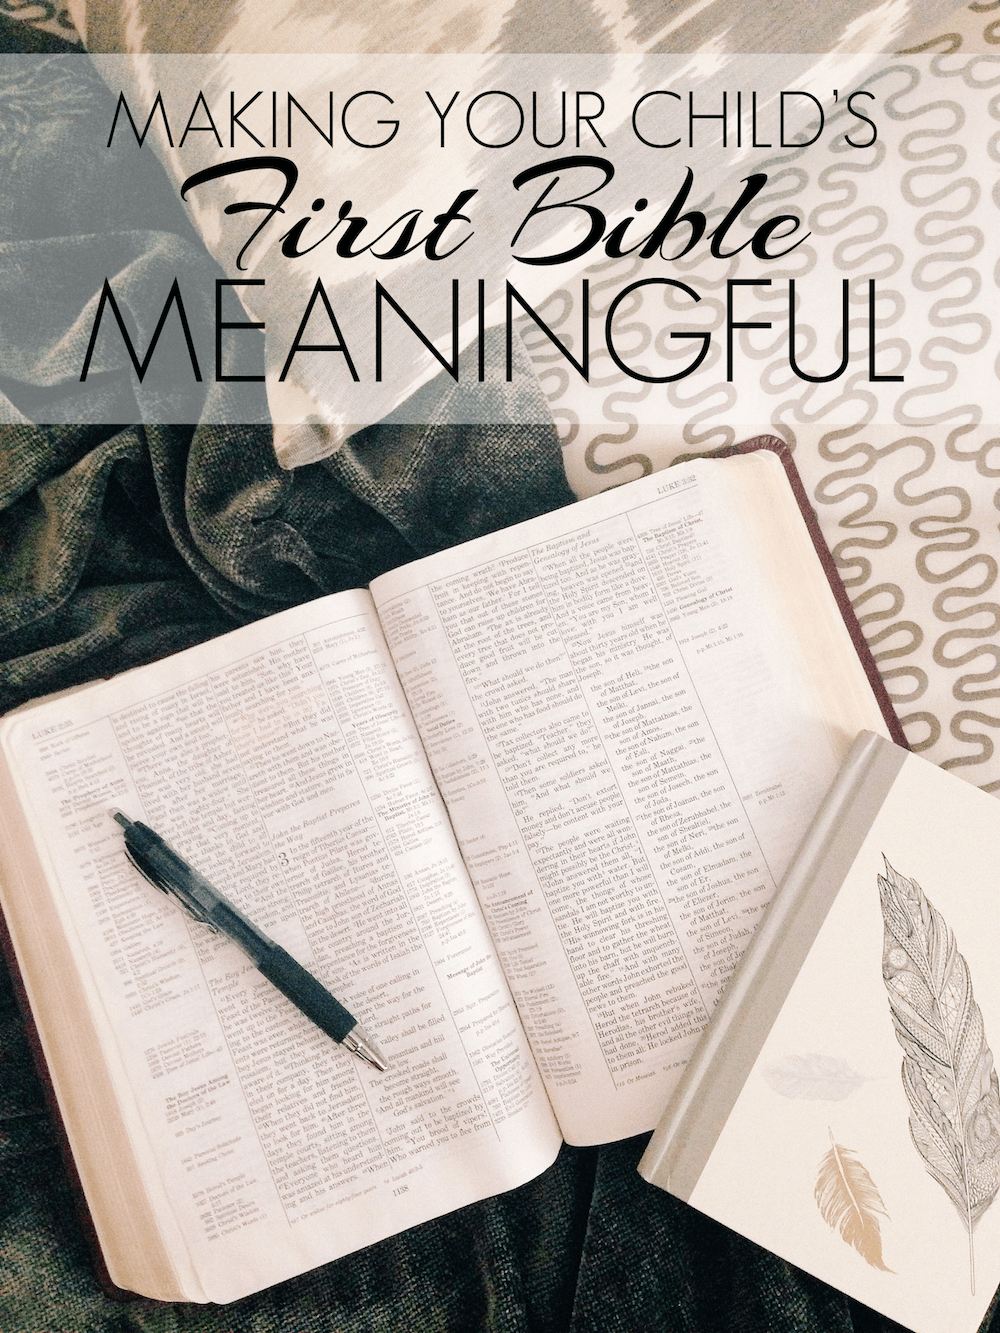 Making Your Child's First Bible Meaningful